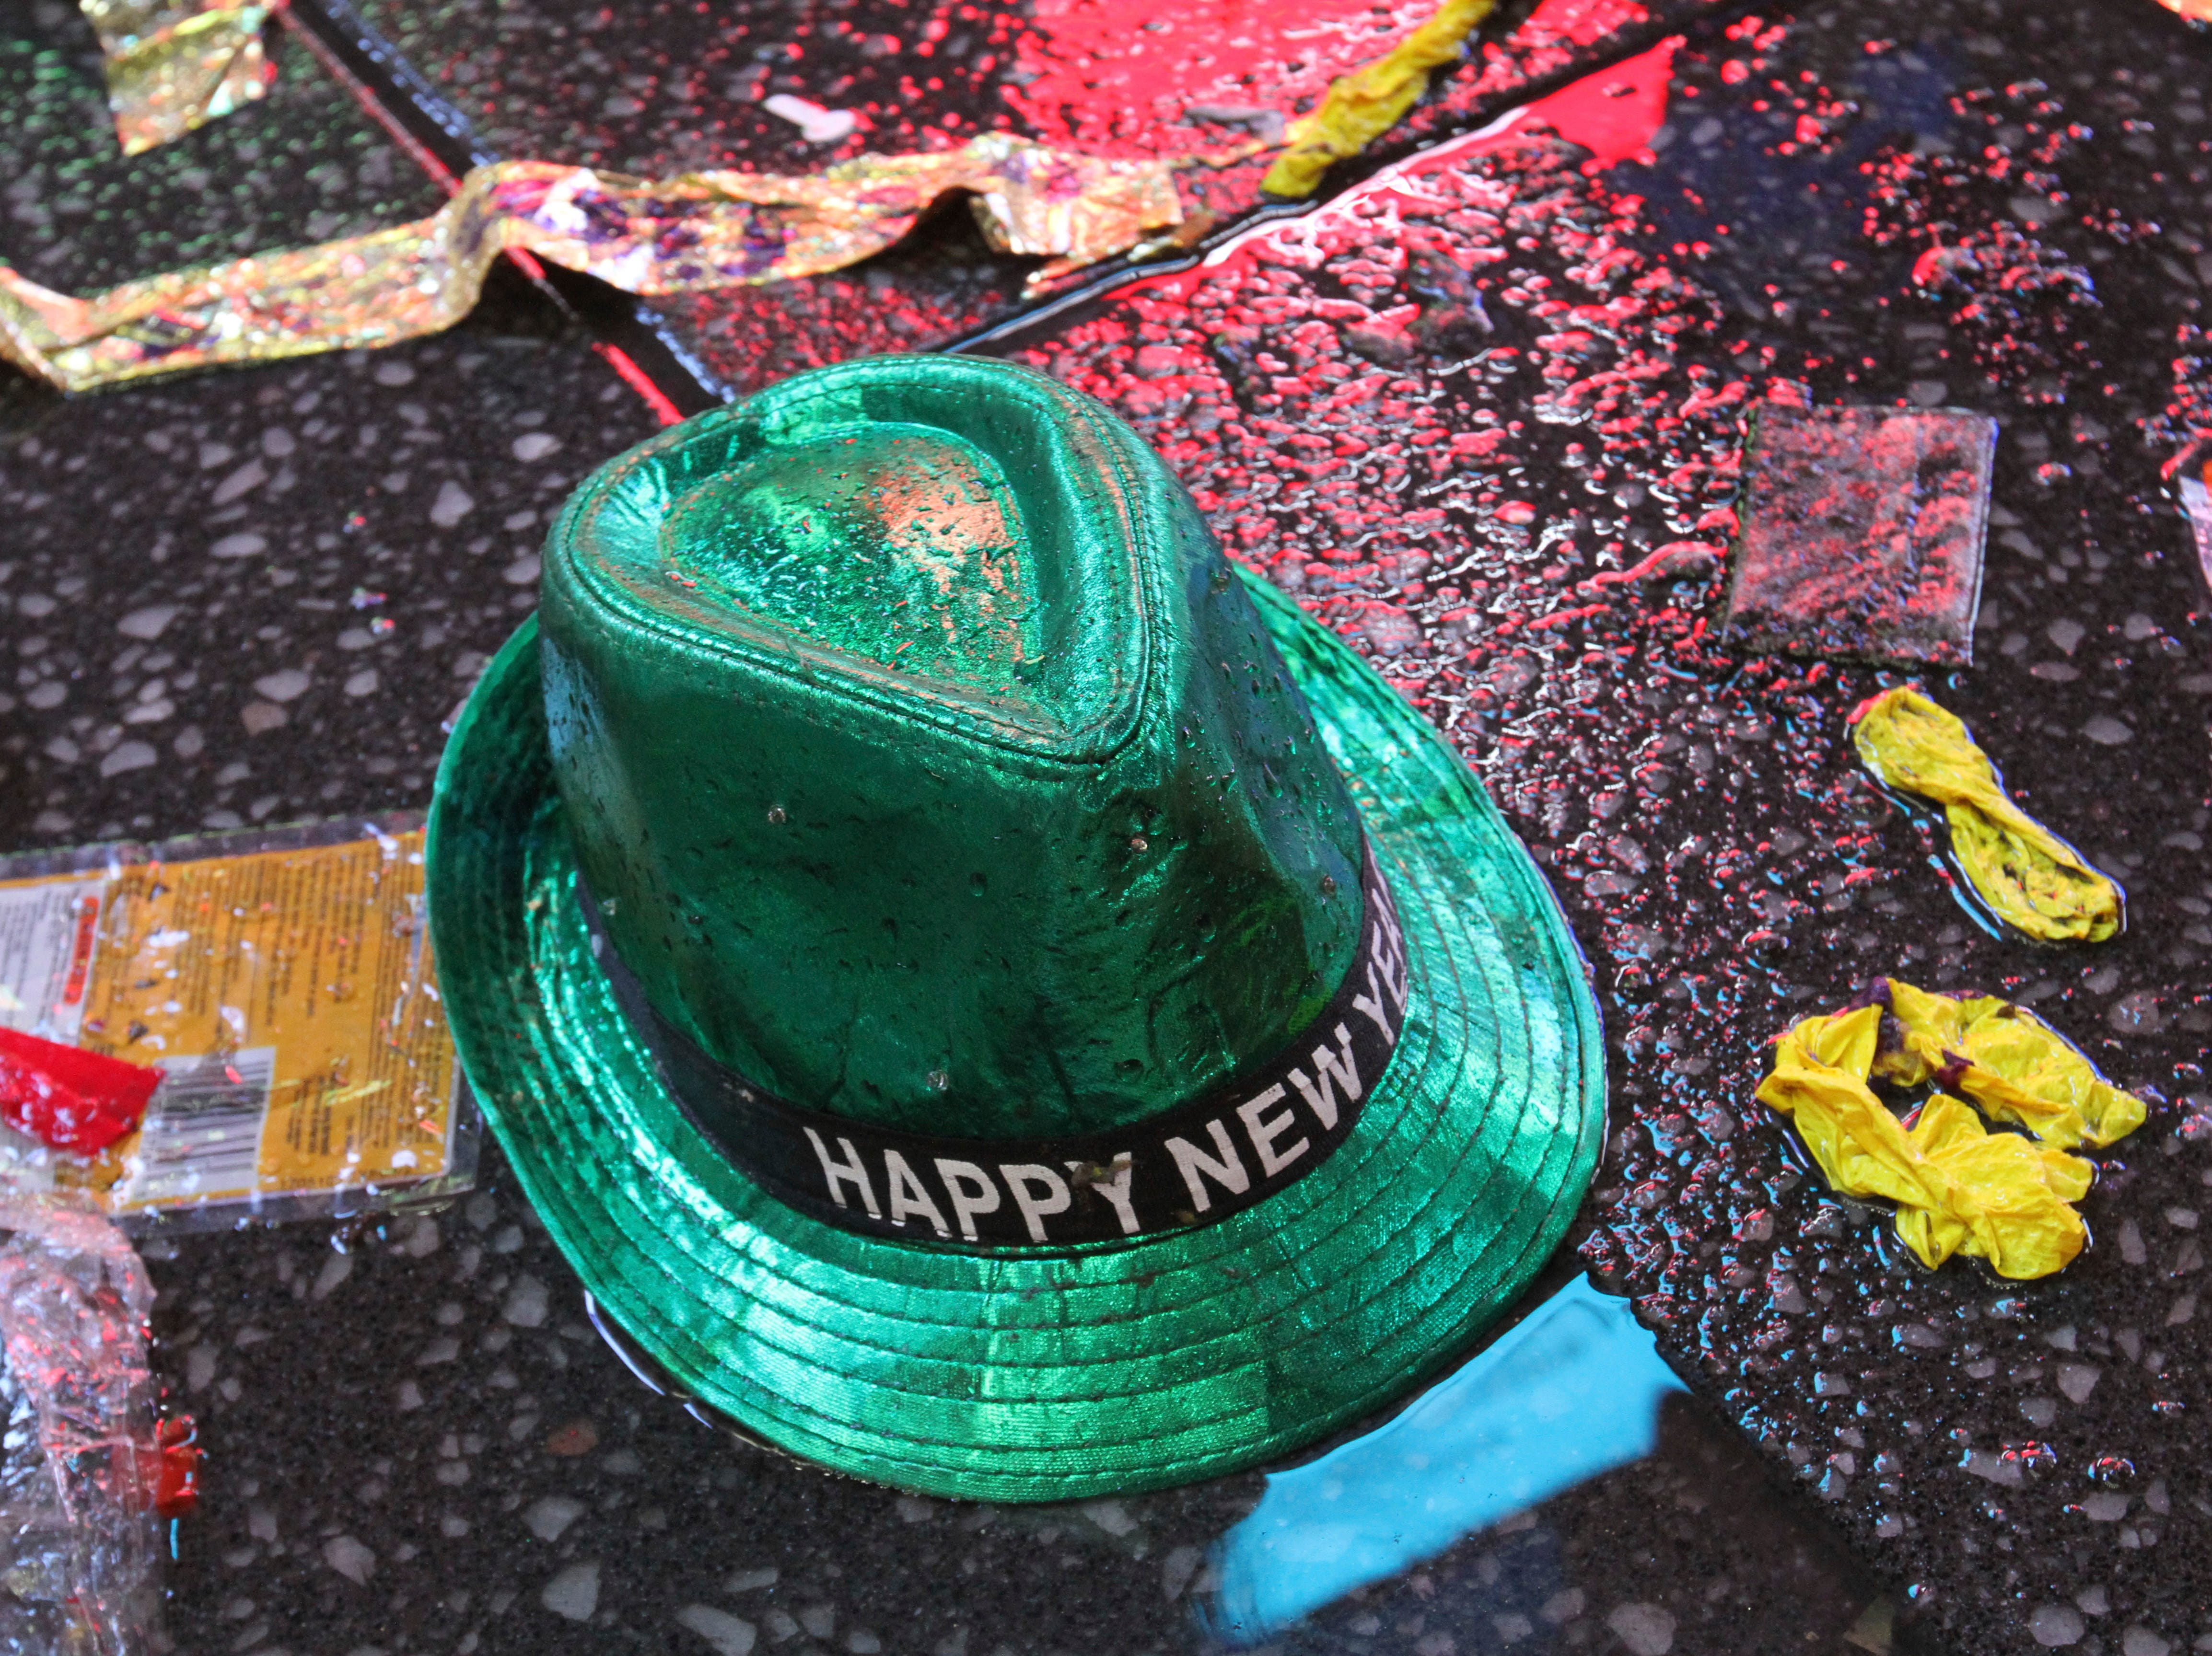 """A """"Happy New Year"""" hat lies on the wet ground along with other items following the celebration in New York's Times Square, early Tuesday, Jan. 1, 2019."""